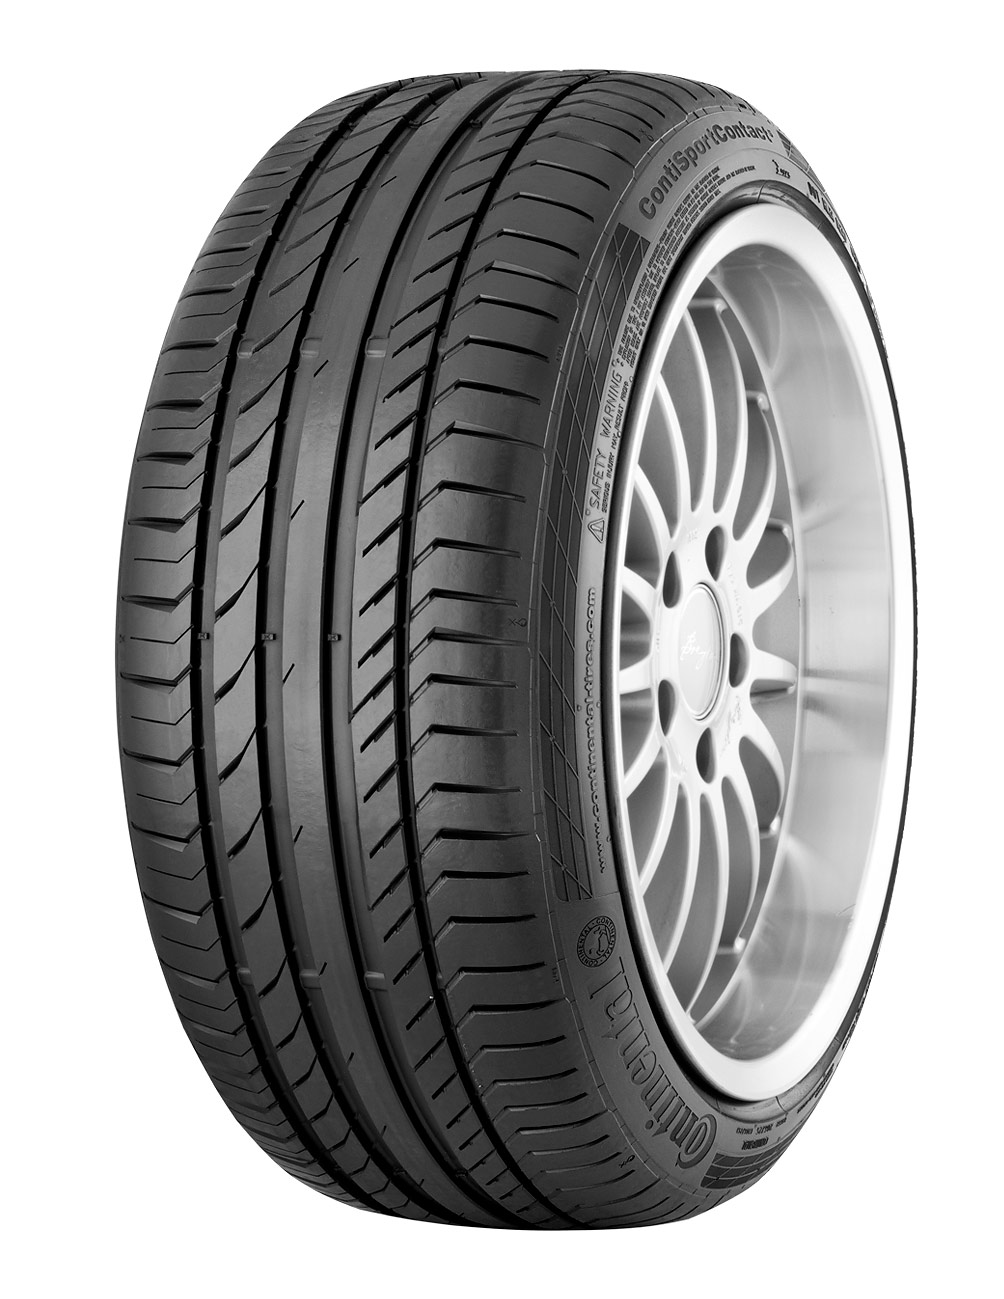 Gomme Nuove Continental 245/45 R19 102Y SP.CONTACT 5 MO1 XL pneumatici nuovi Estivo